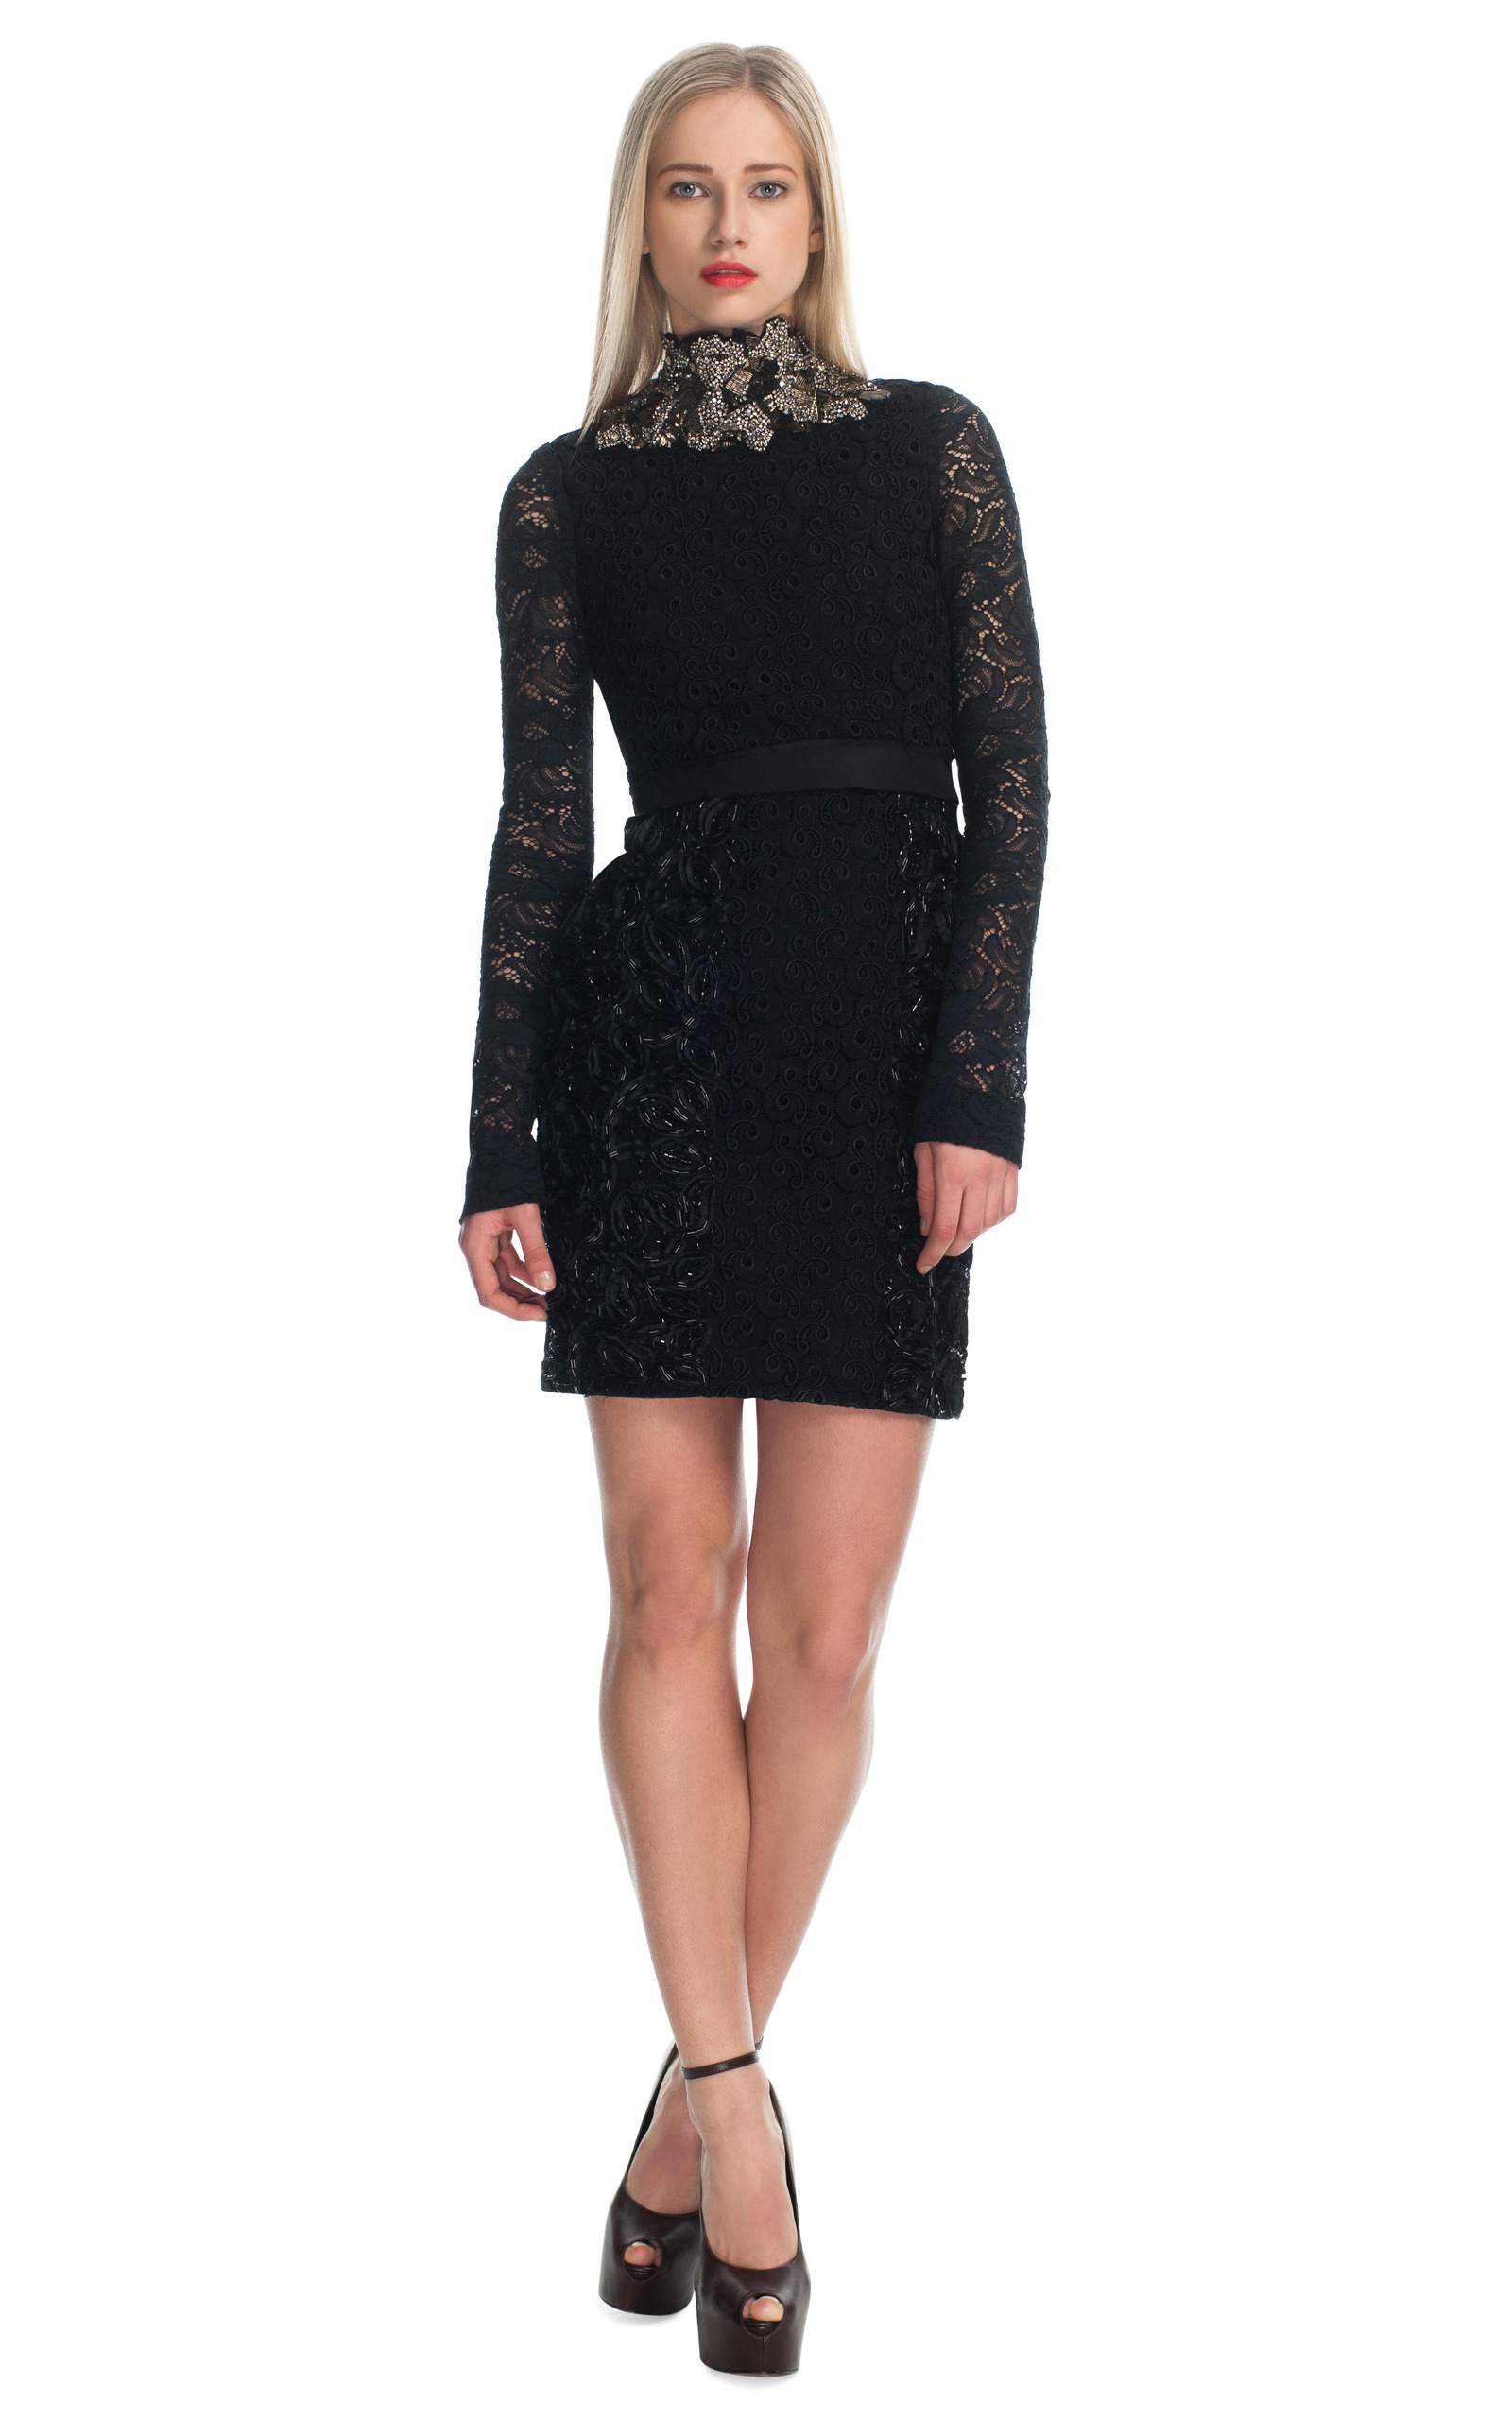 Ampersand Guipure Lace Dress With Jeweled Collar